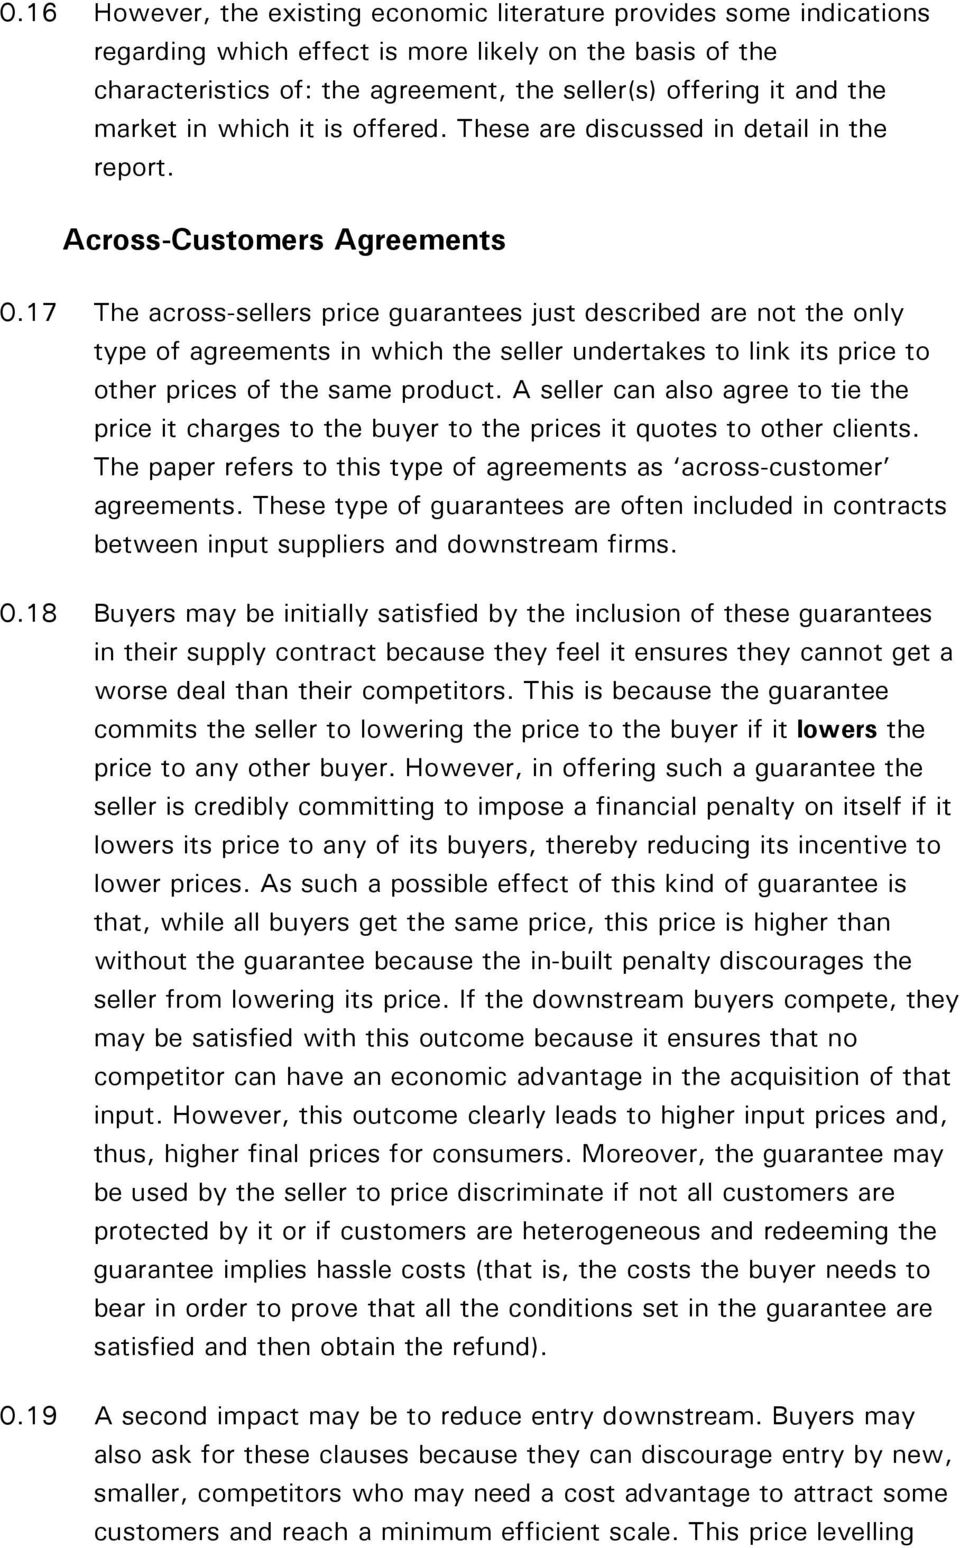 17 The across-sellers price guarantees just described are not the only type of agreements in which the seller undertakes to link its price to other prices of the same product.